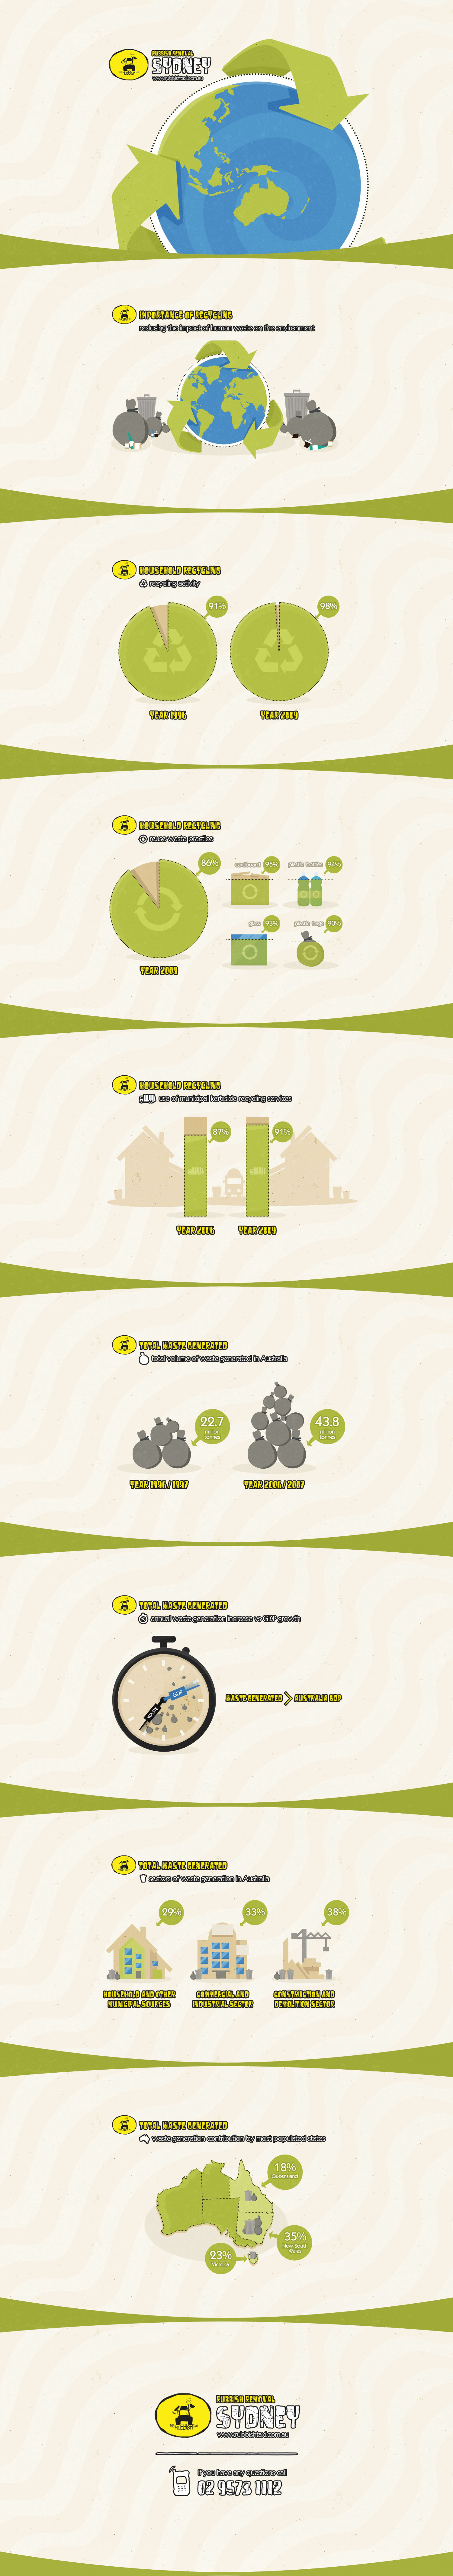 Importance of recycling  - Rubbish Removal Sydney  Infographic